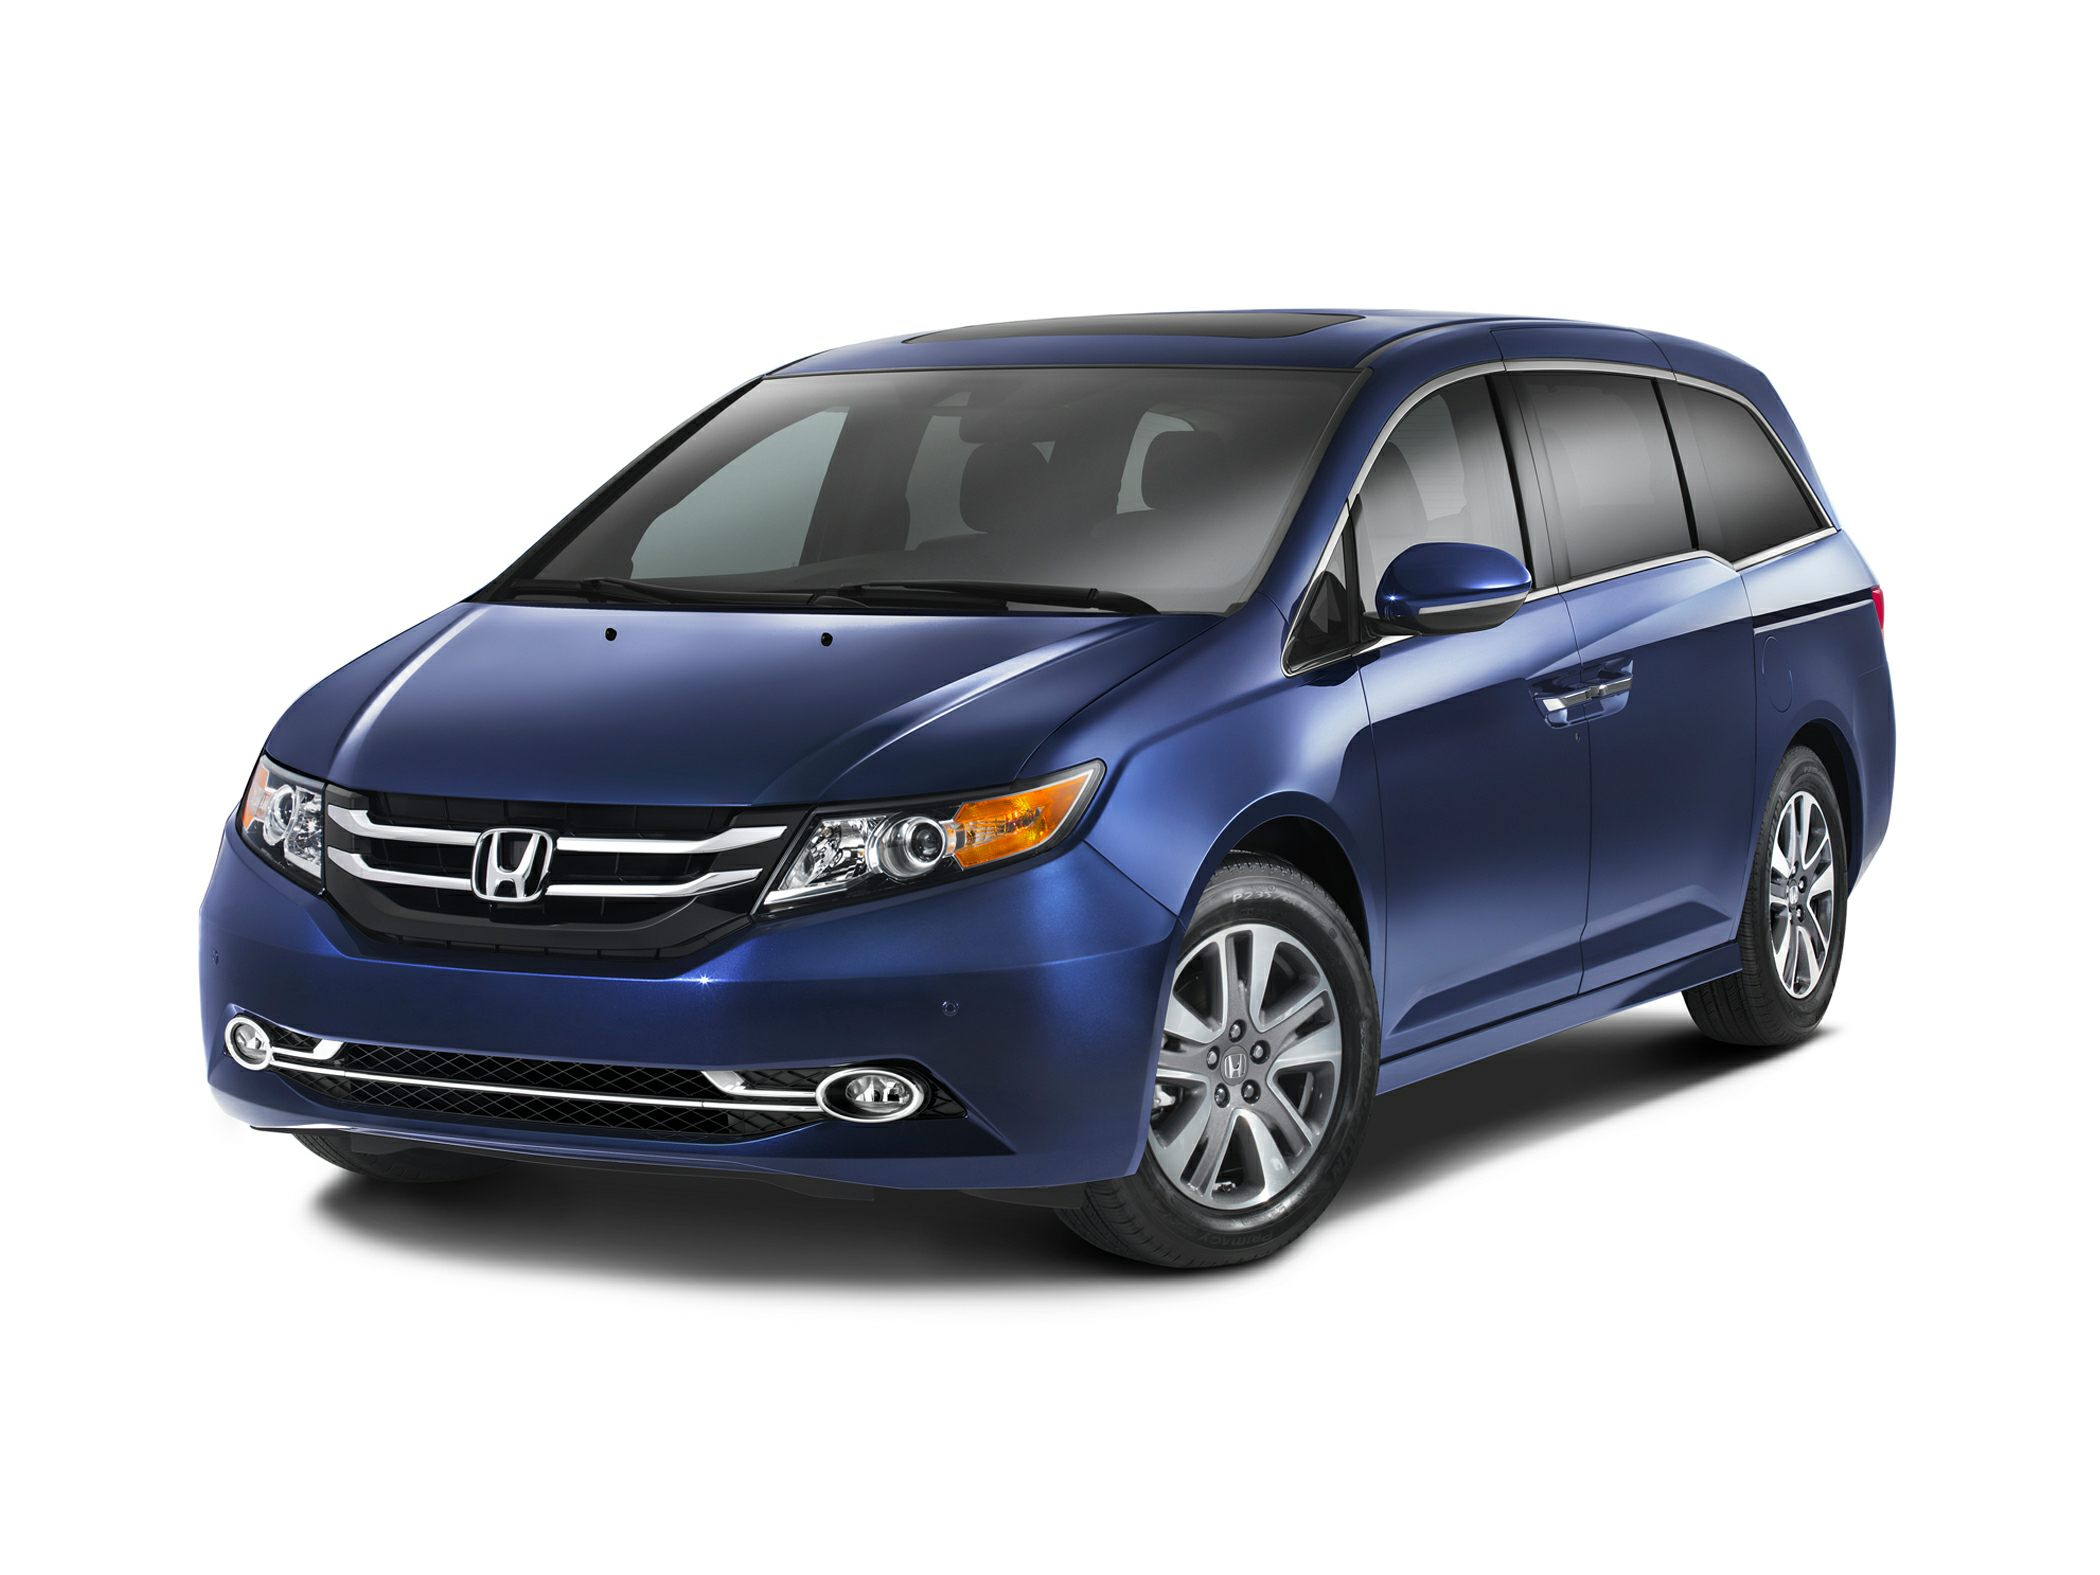 2017 honda odyssey styles features highlights. Black Bedroom Furniture Sets. Home Design Ideas